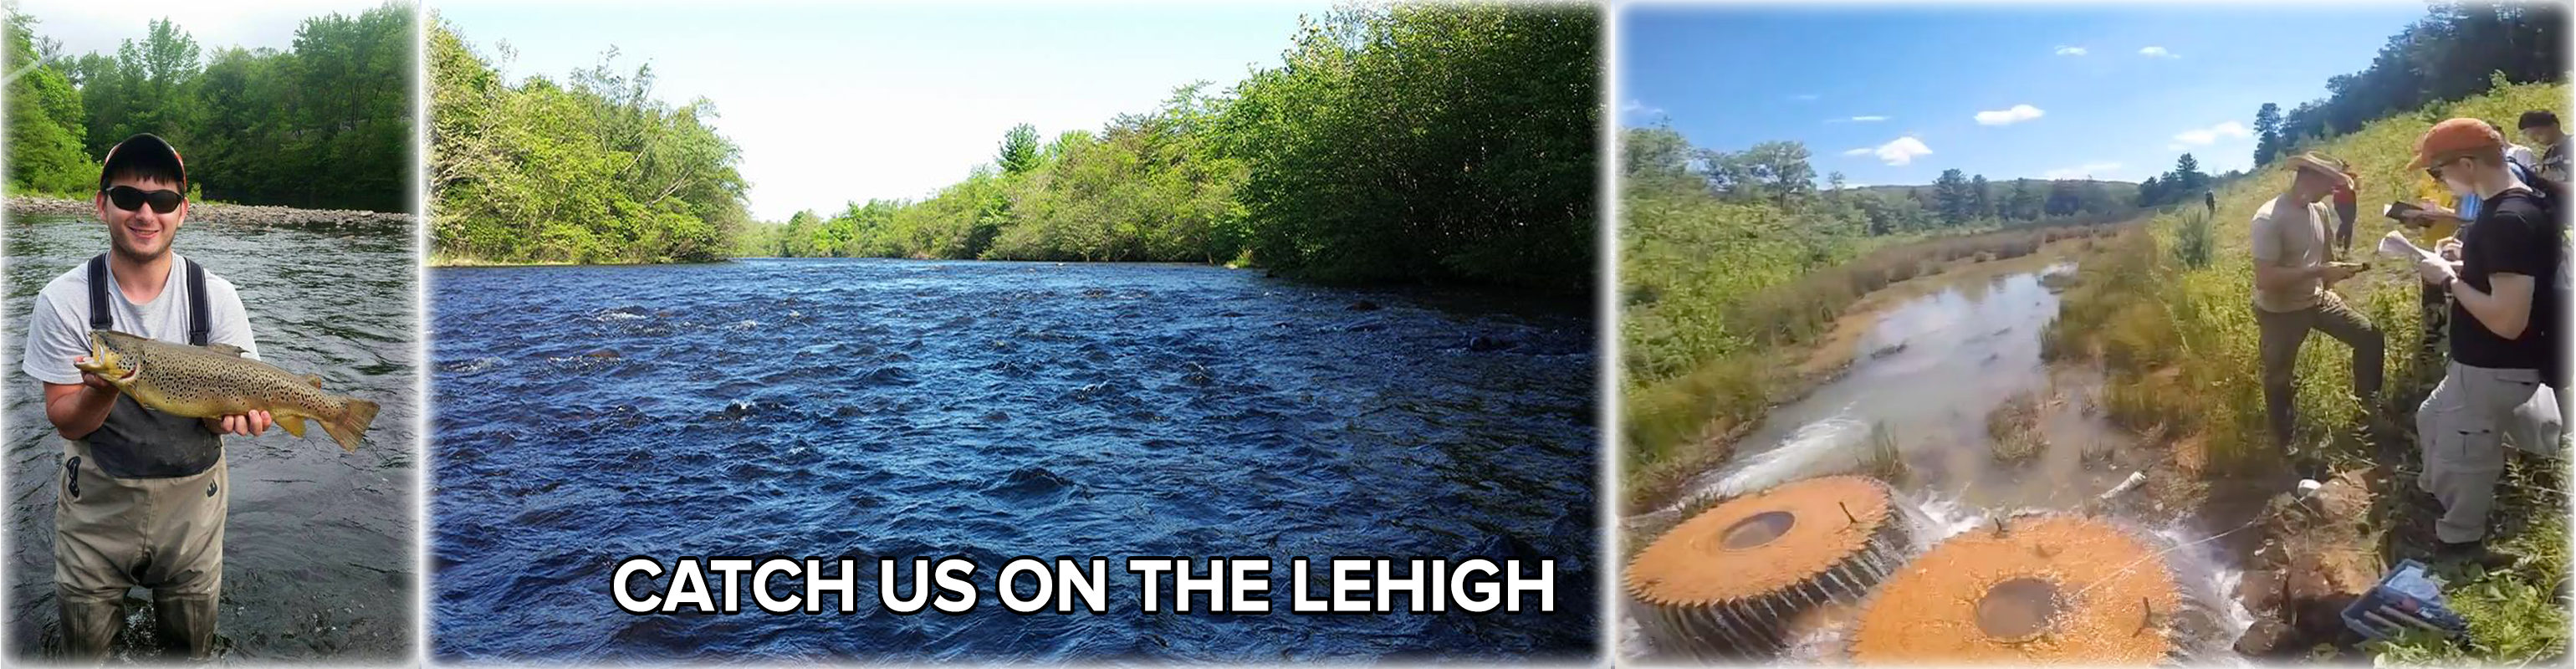 Lehigh River Stocking Association